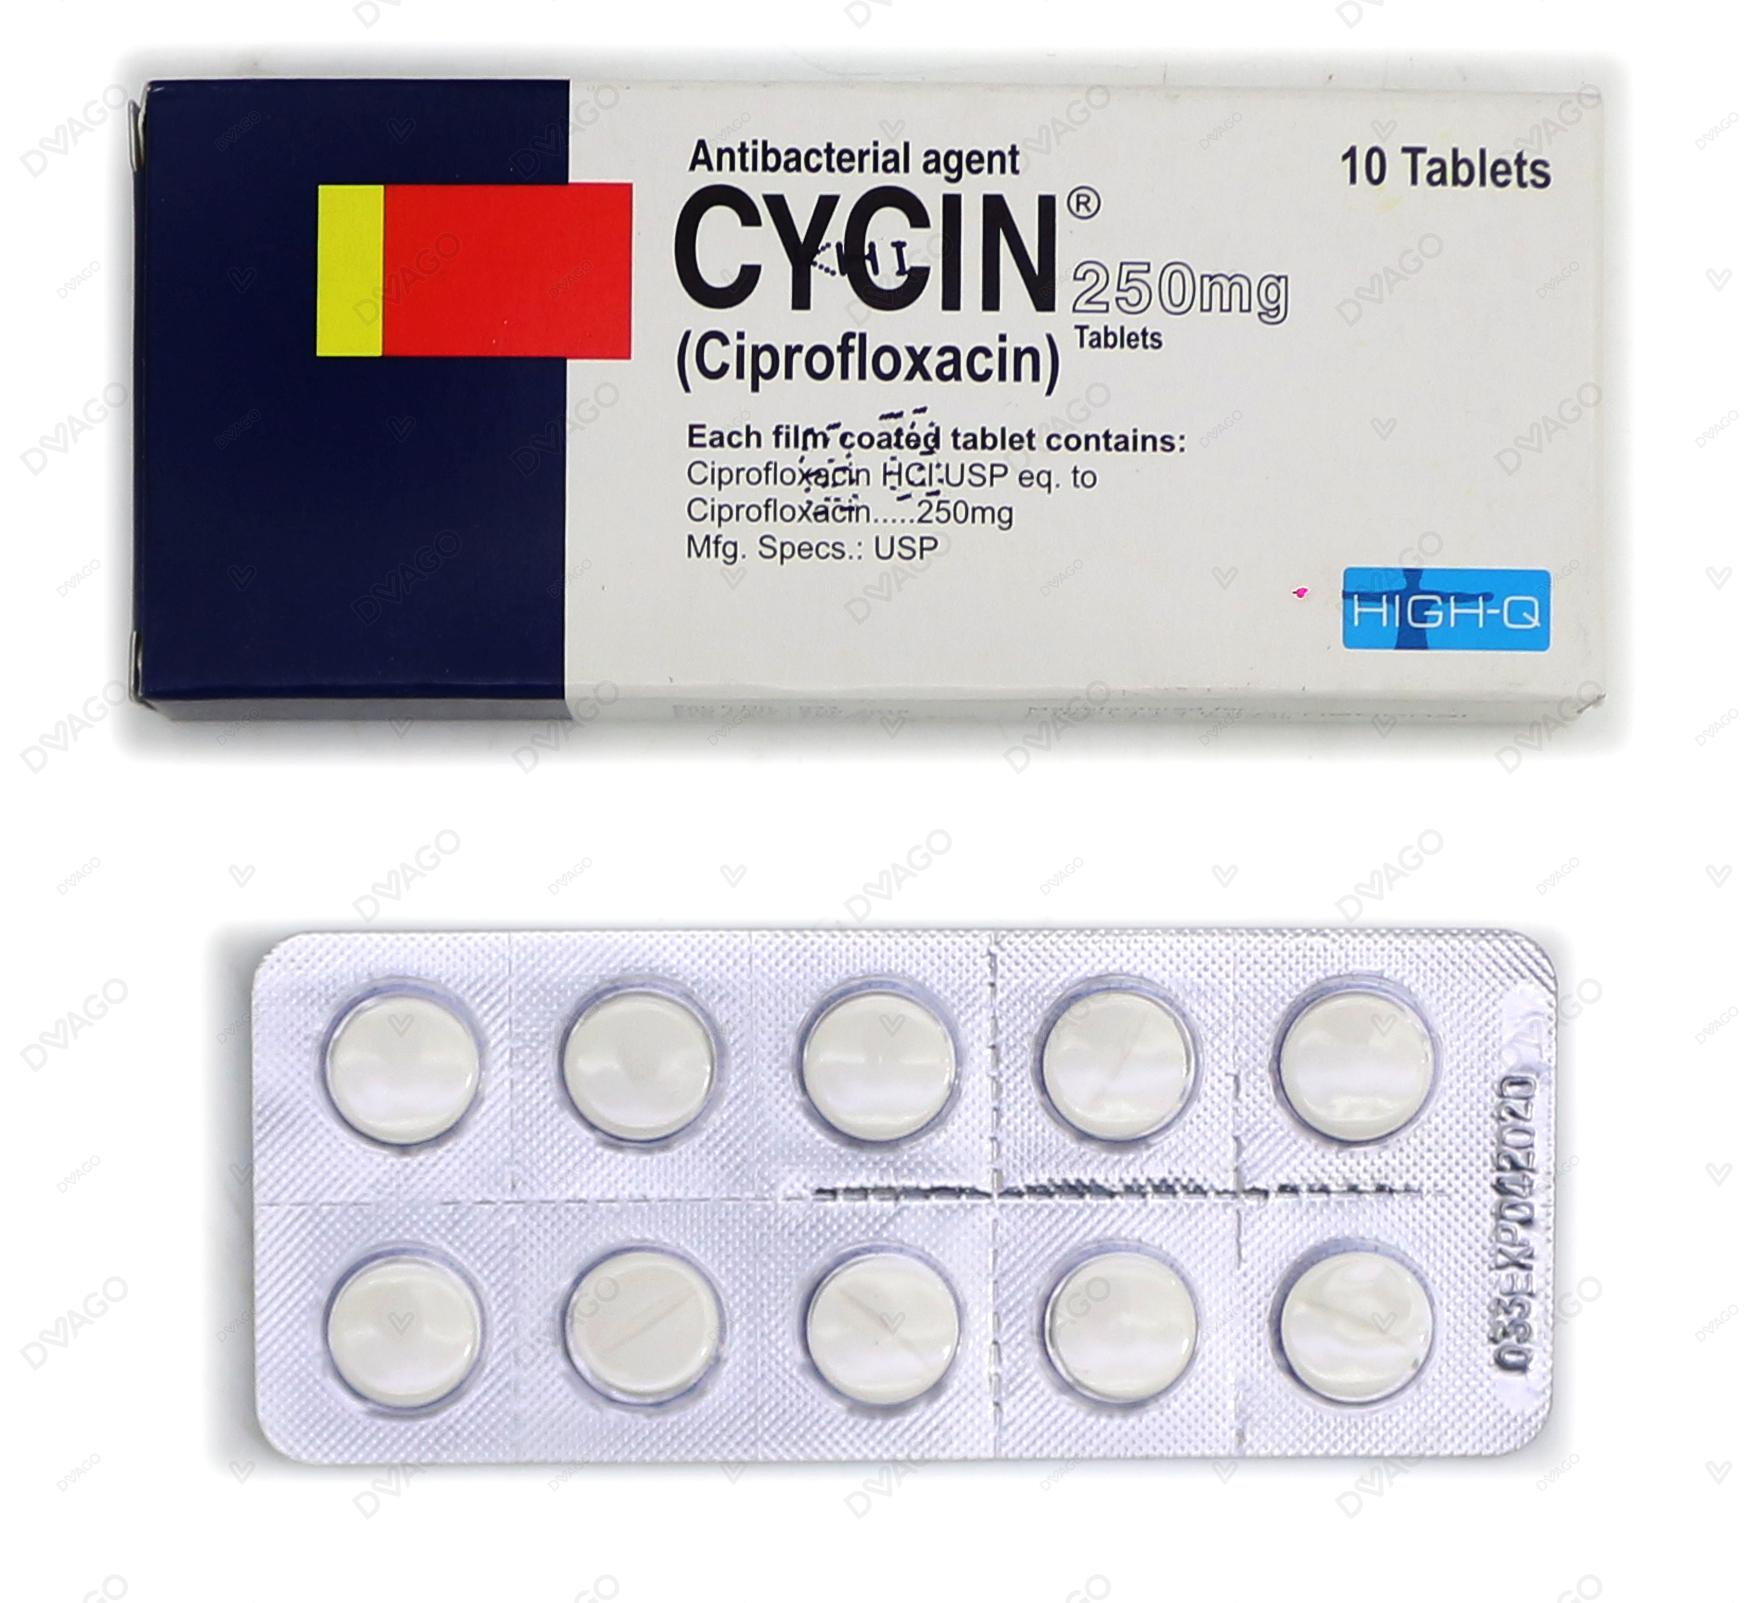 Cycin Tablets 250mg 10's